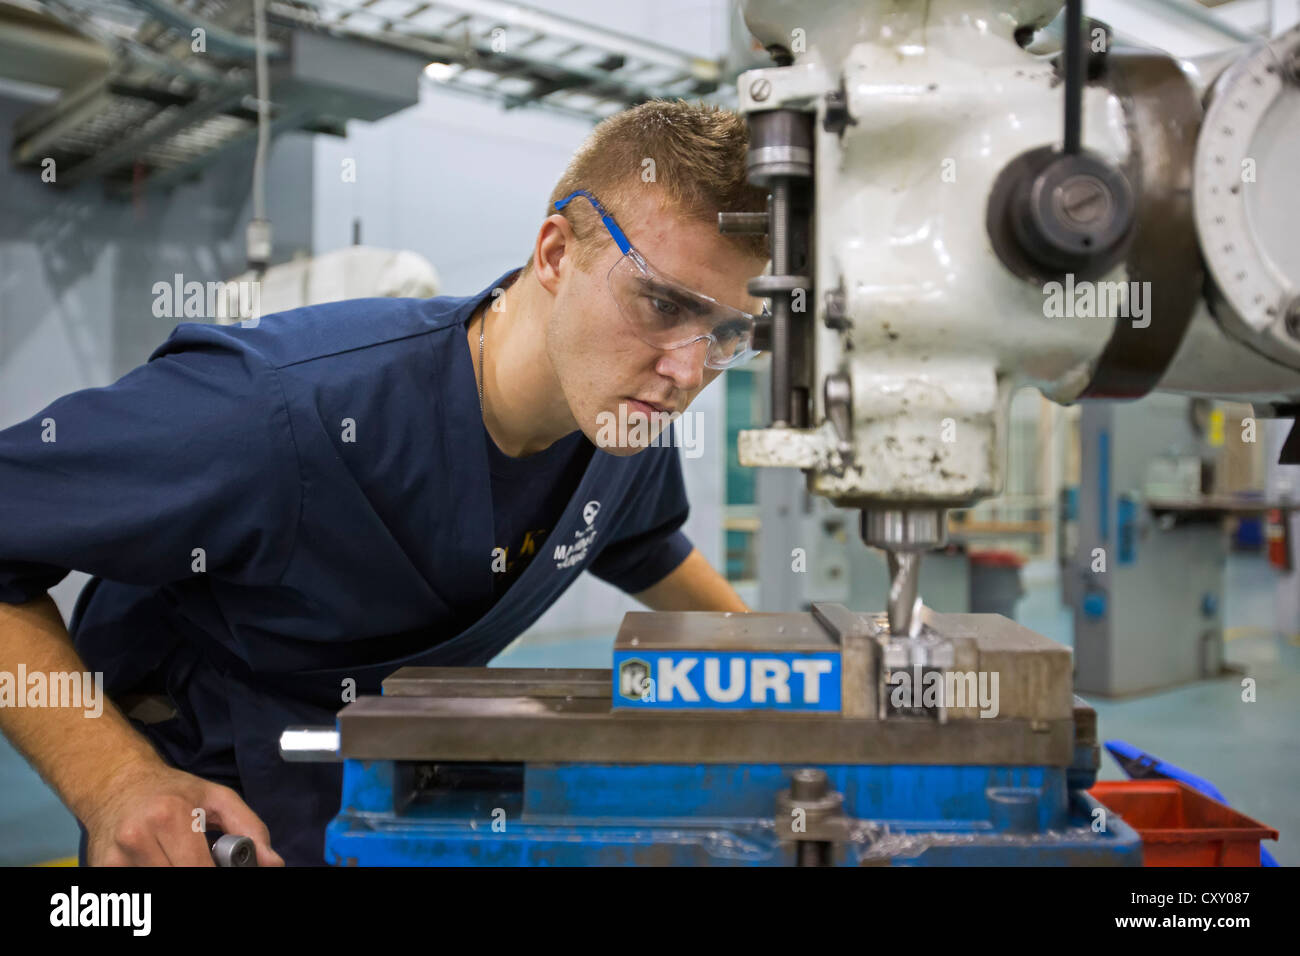 What is involved in machinist training?